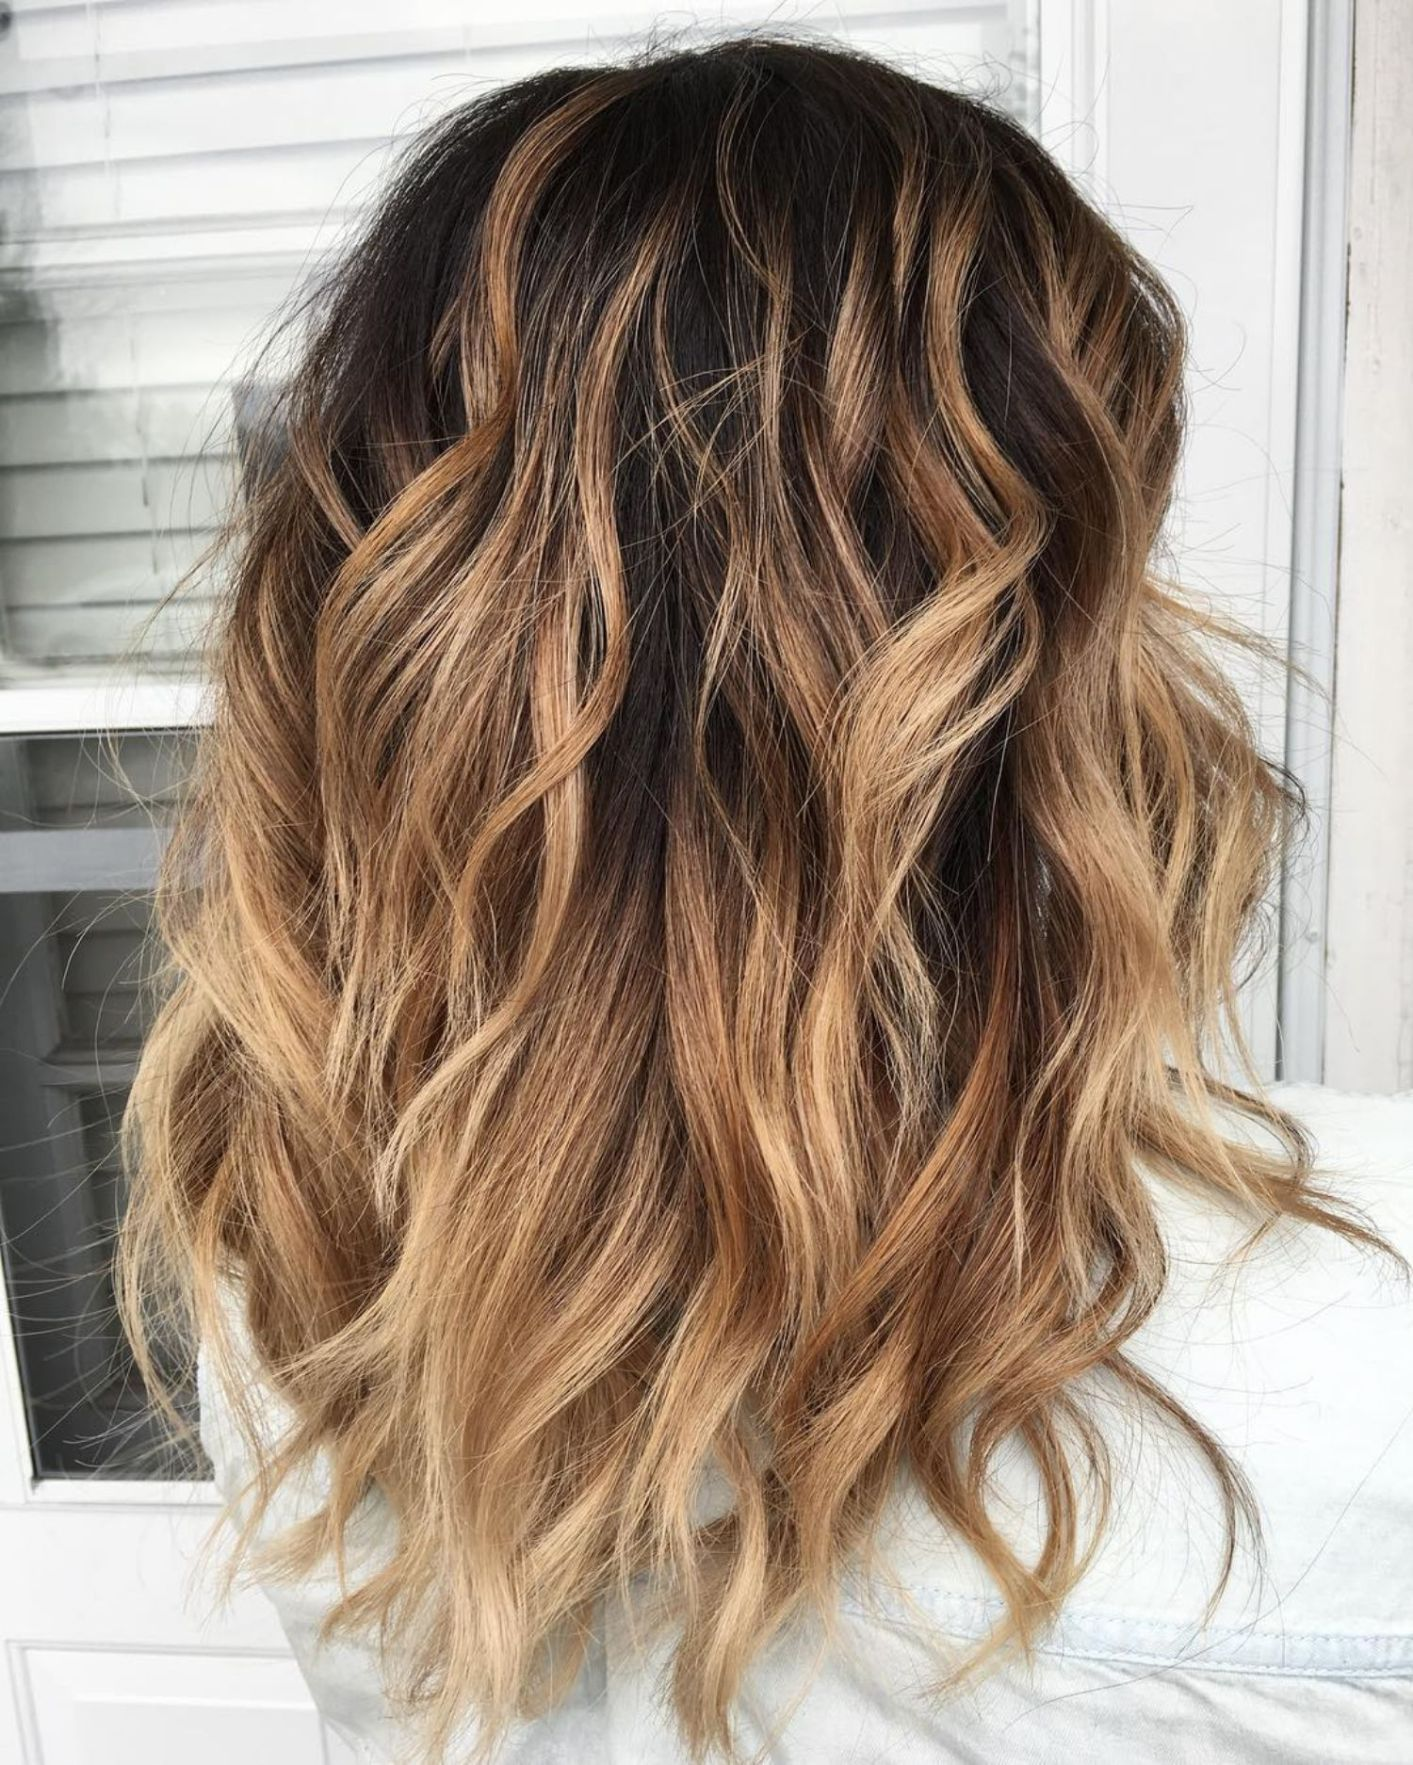 35++ Layered haircuts for thick hair ideas in 2021